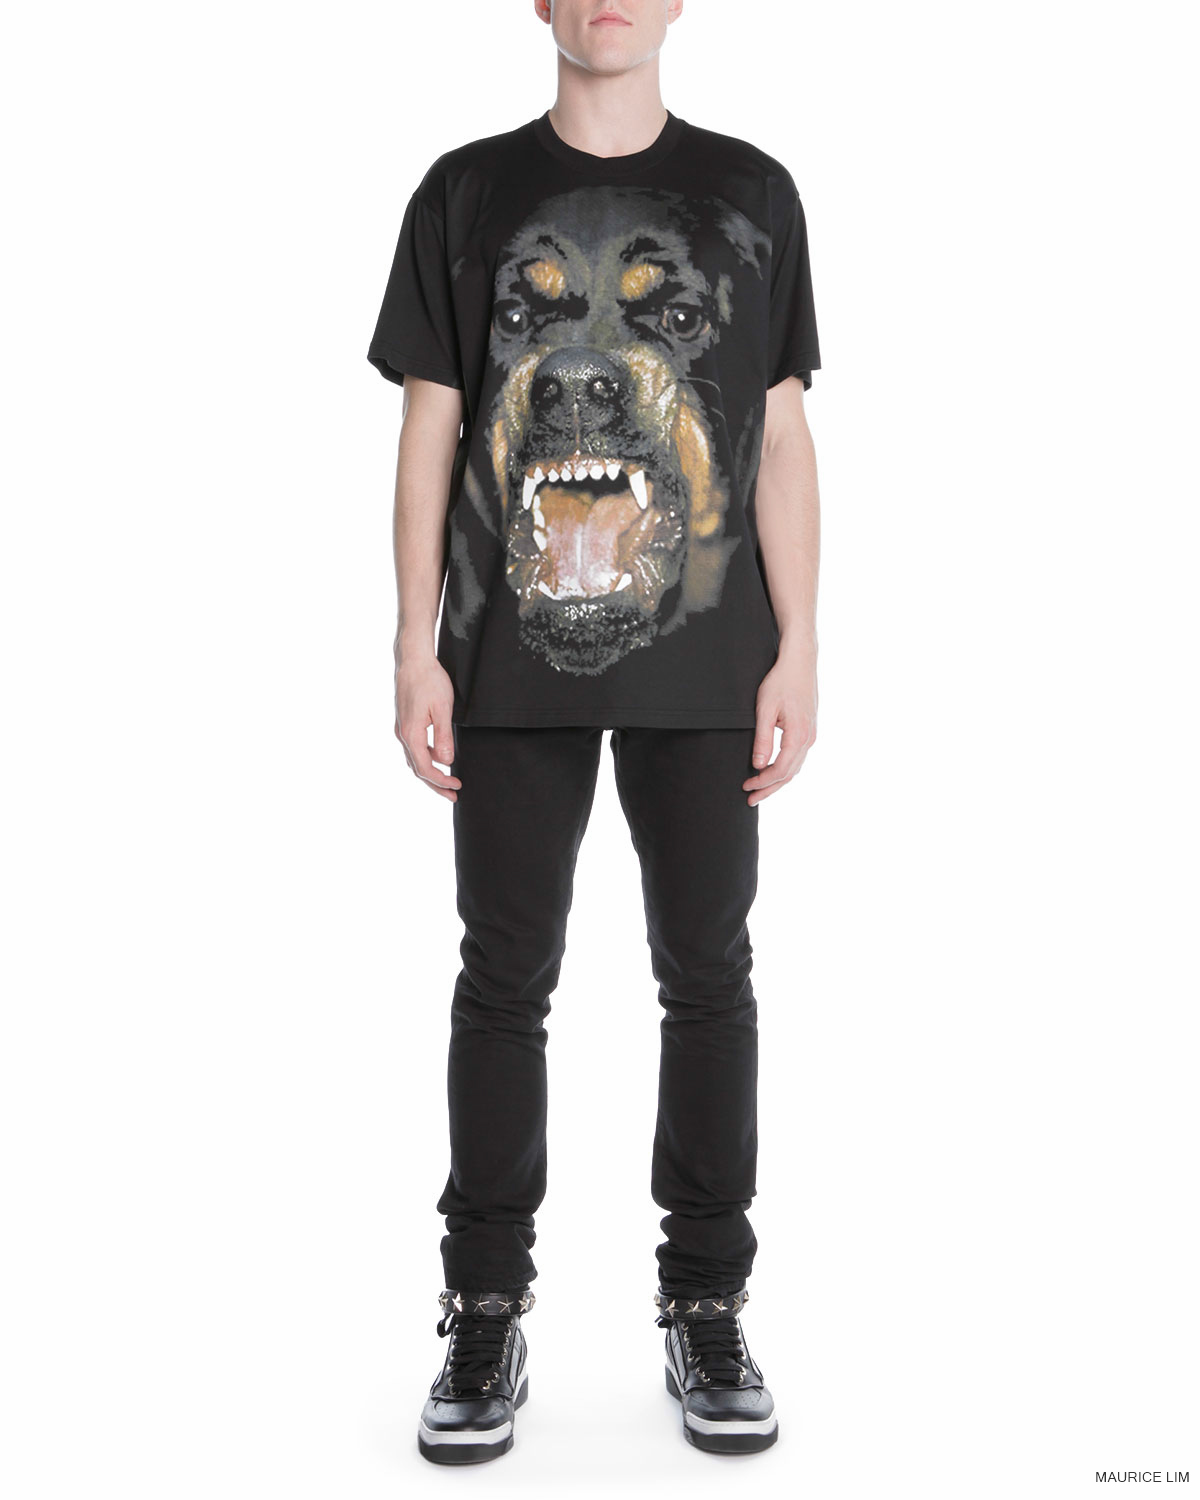 Givenchy bambi t shirt price Givenchy t shirt price